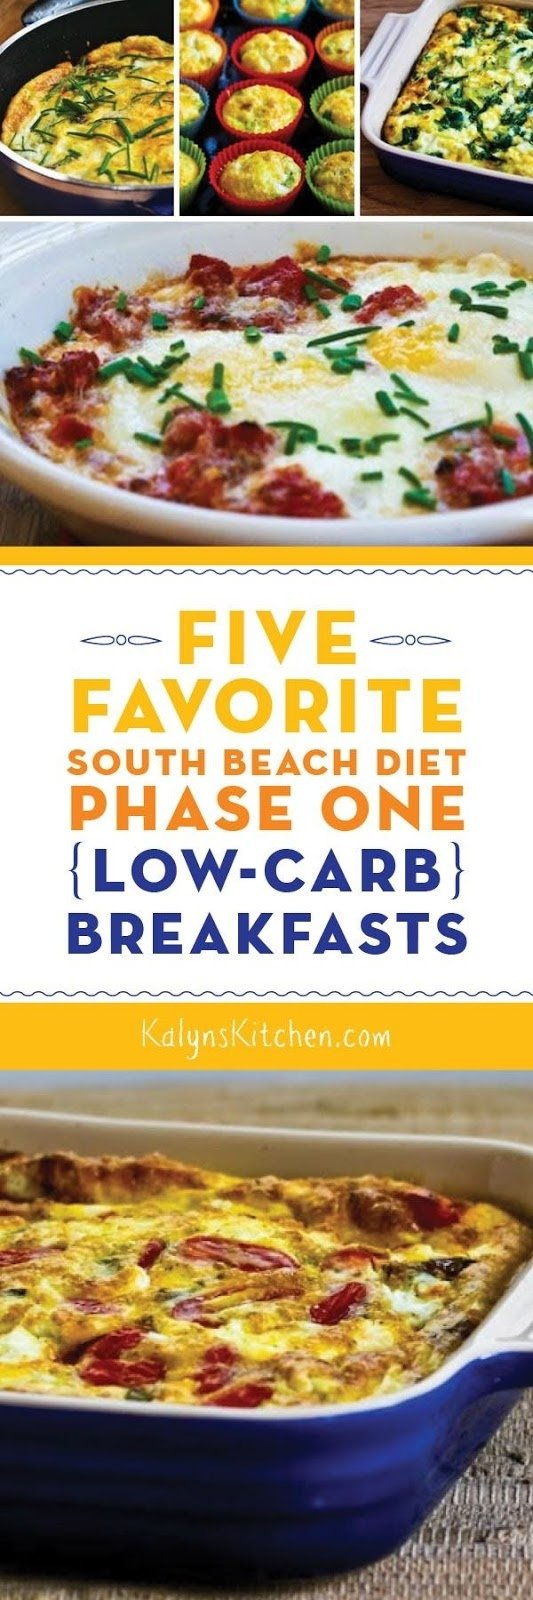 five favorite south beach diet phase one (low-carb) breakfasts